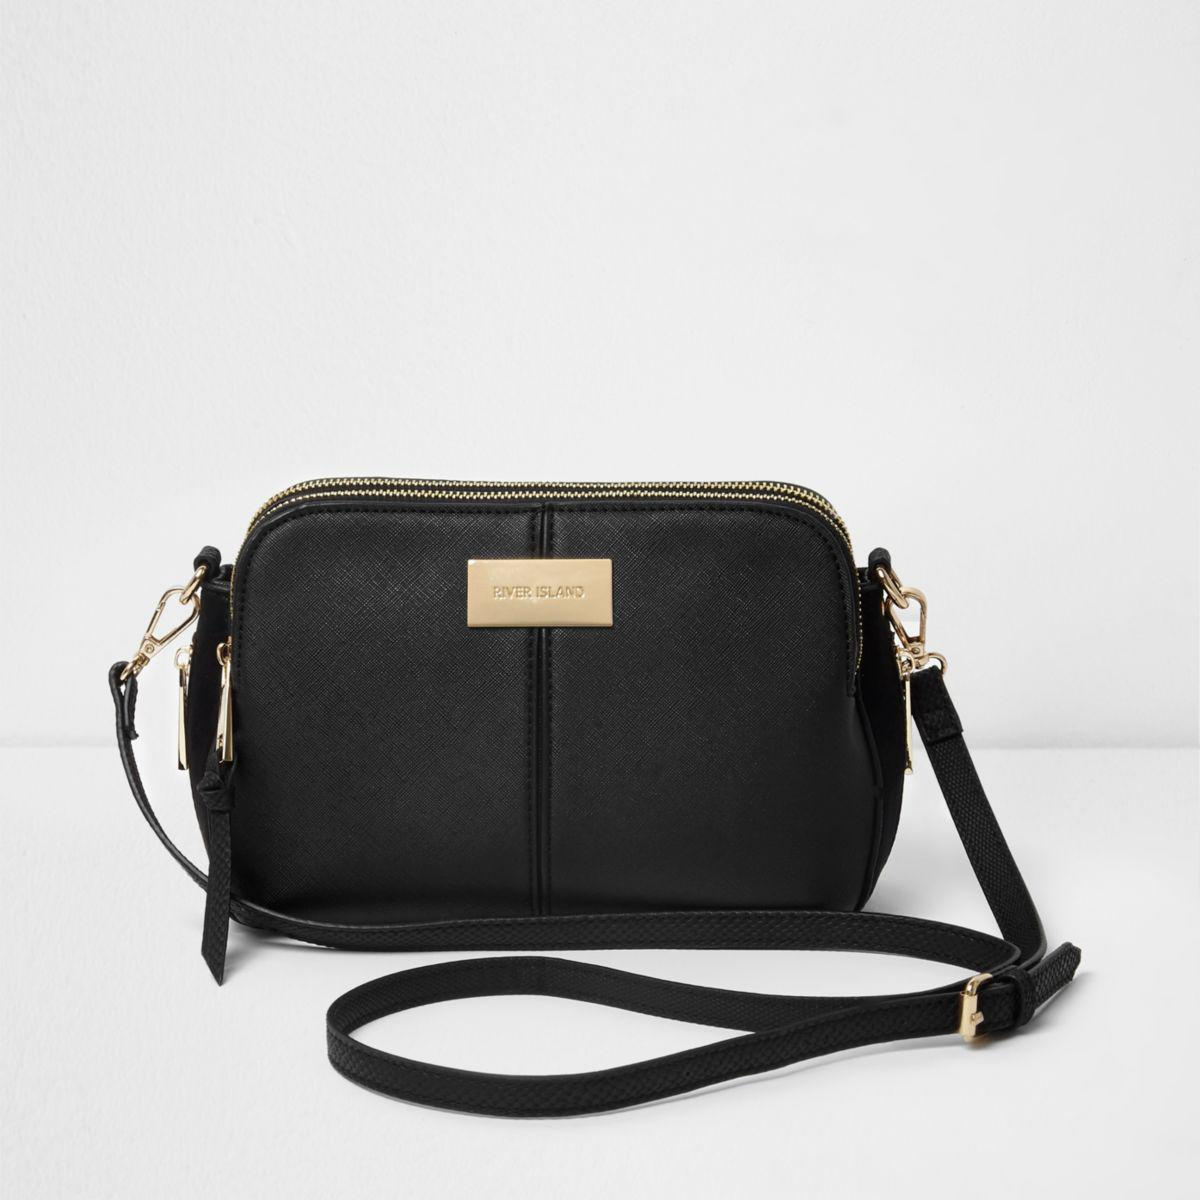 83c8e6f76478a1 River Island Black Triple Compartment Cross Body Bag in Black - Lyst